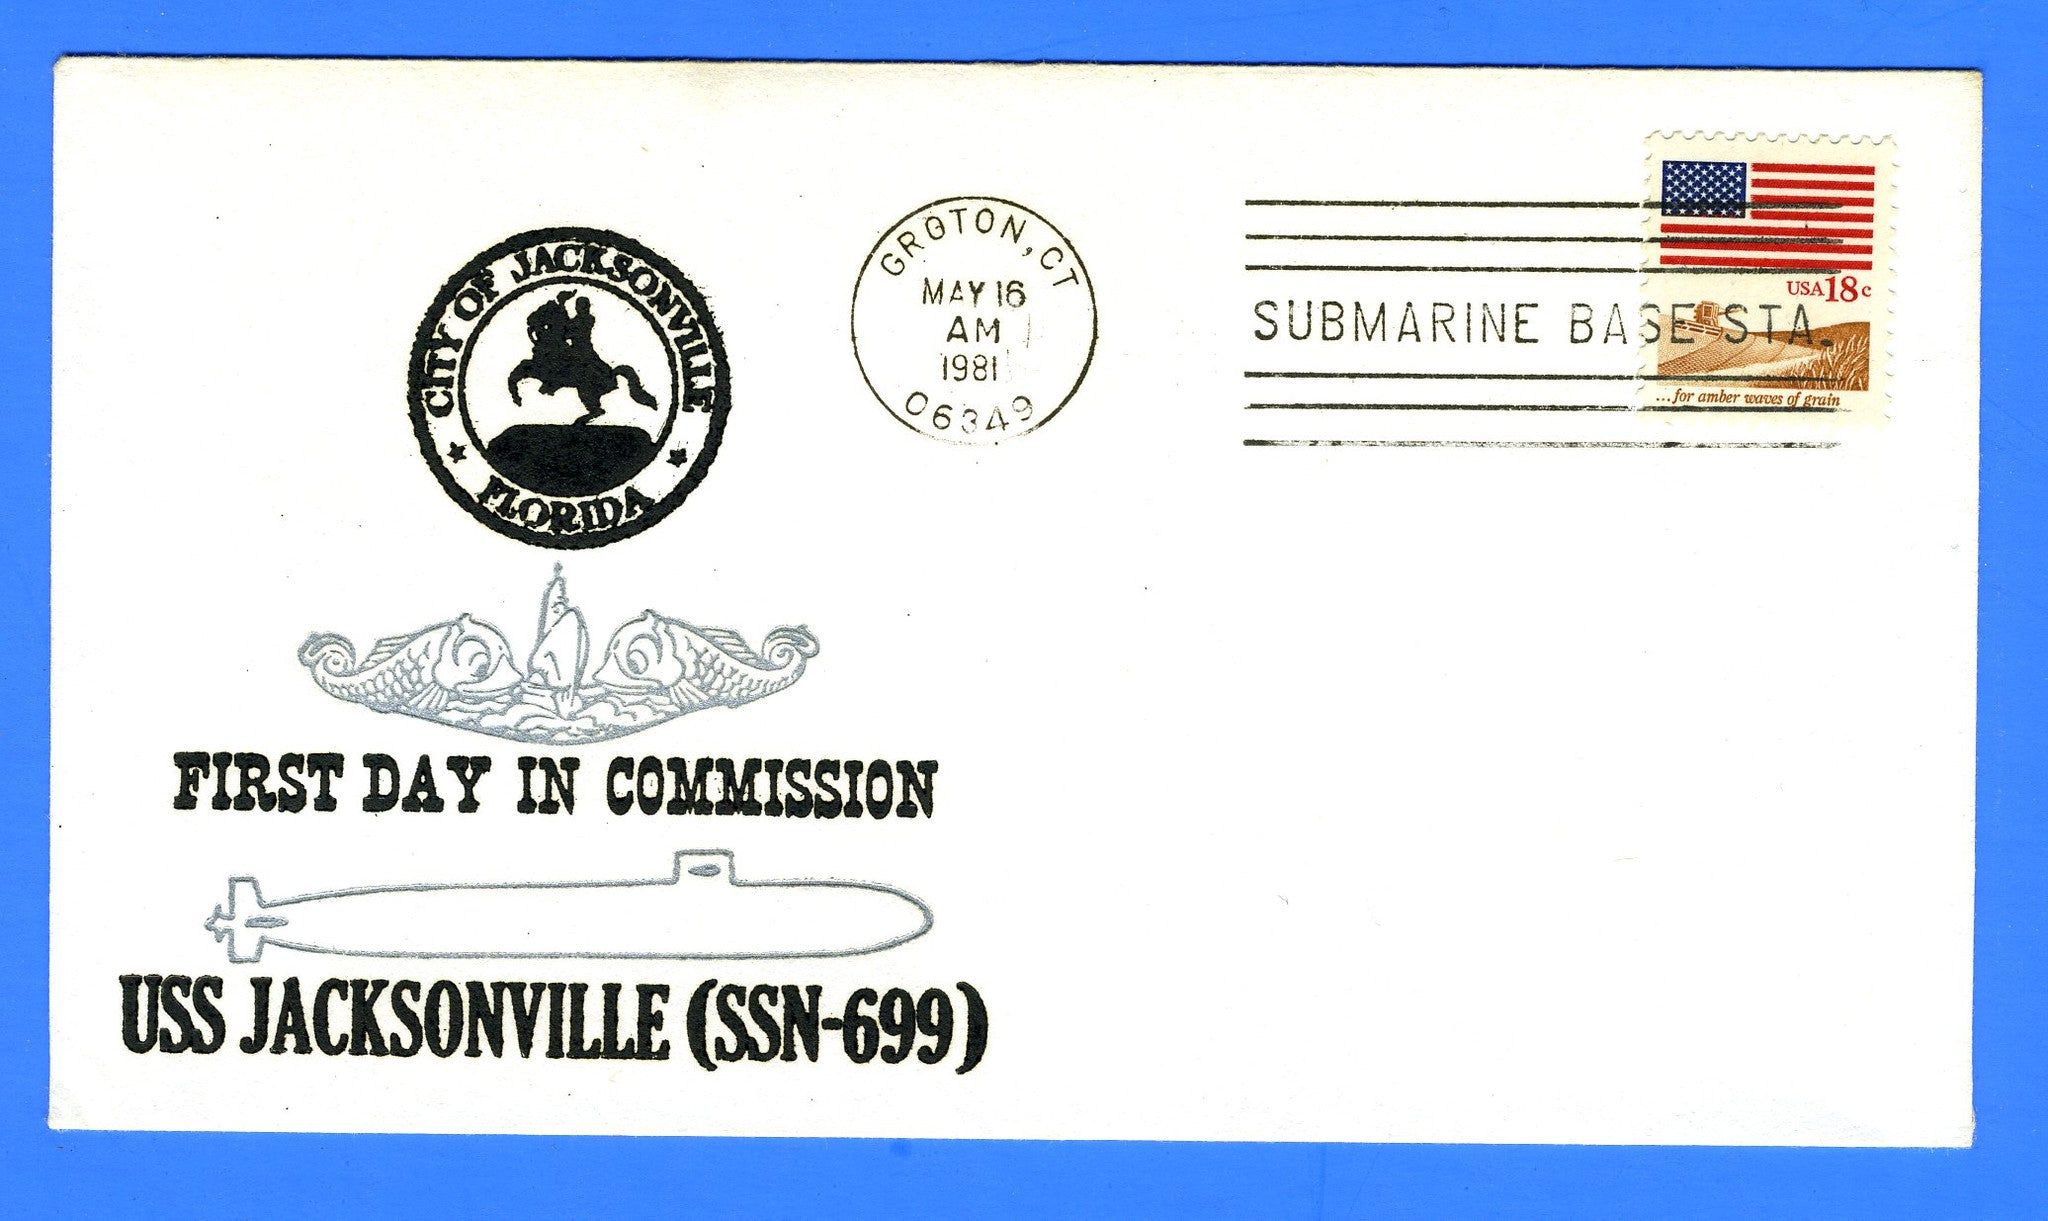 USS Jacksonville SSN-699 Commissioned May 16, 1981 - Cachet by USS Decatur Chapter No. 4, USCS